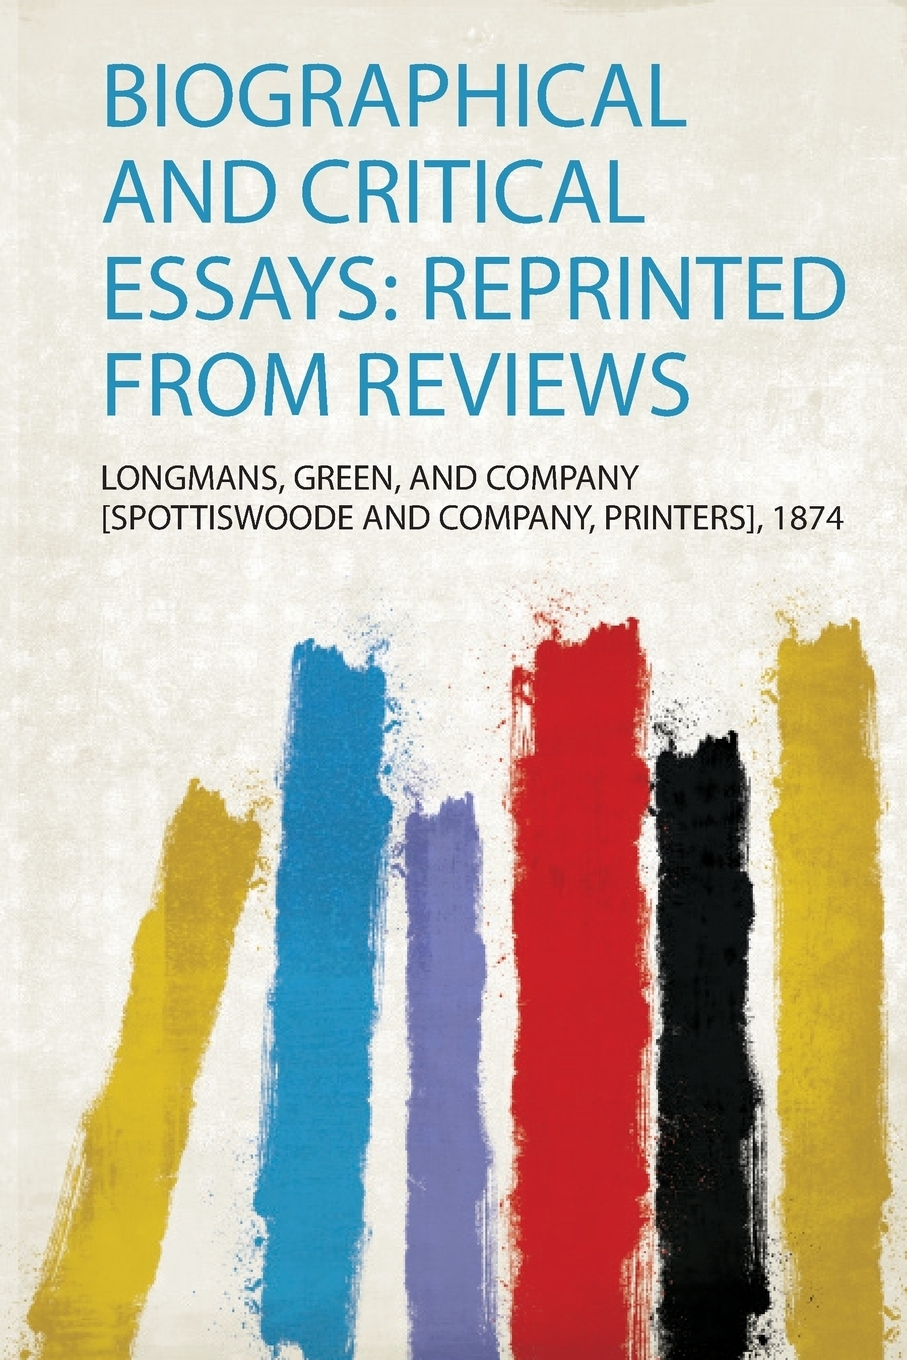 Biographical and Critical Essays. Reprinted from Reviews